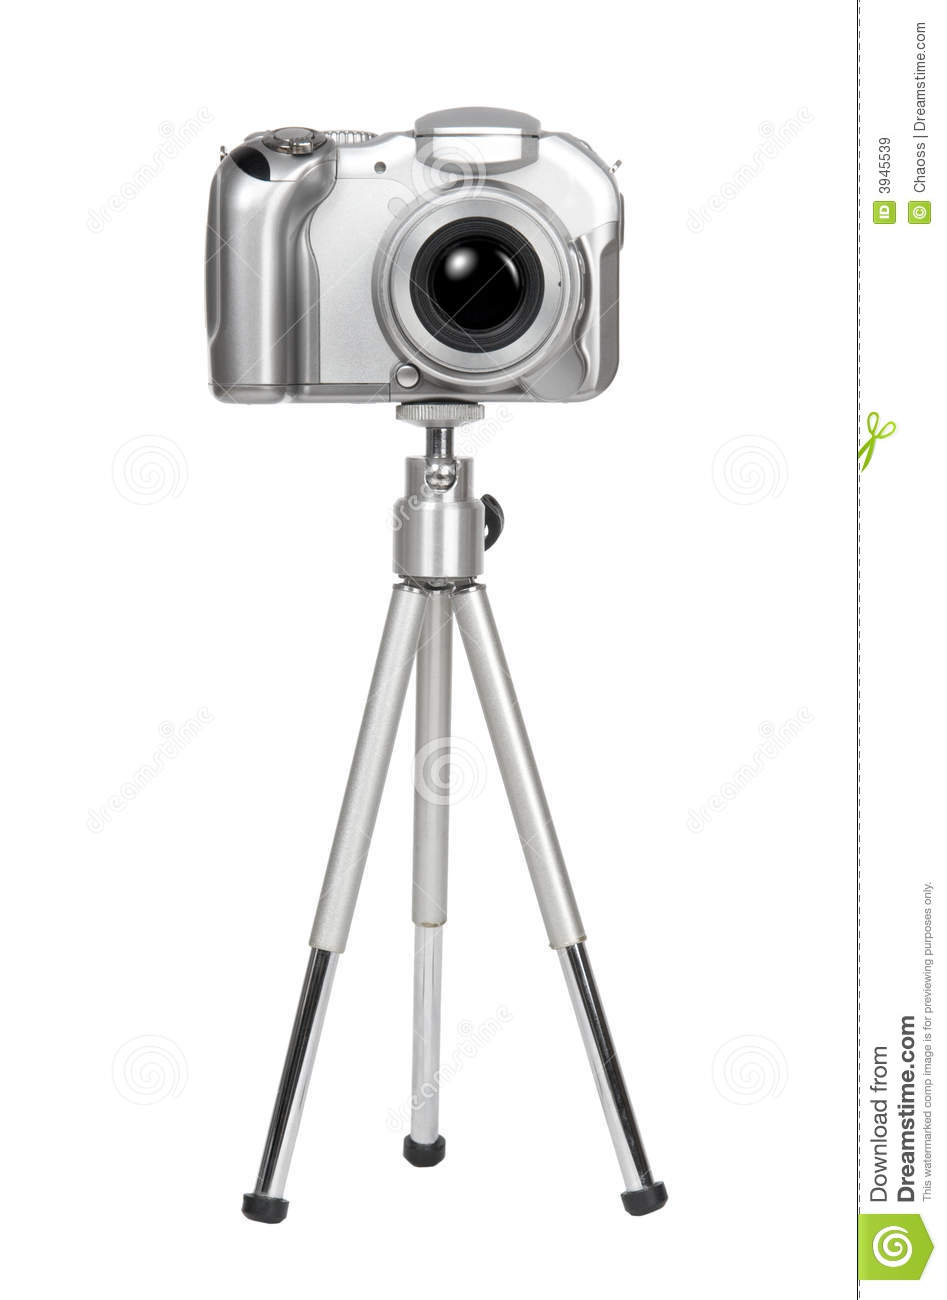 Small silver camera on a tripod royalty free stock images for Camera gratis